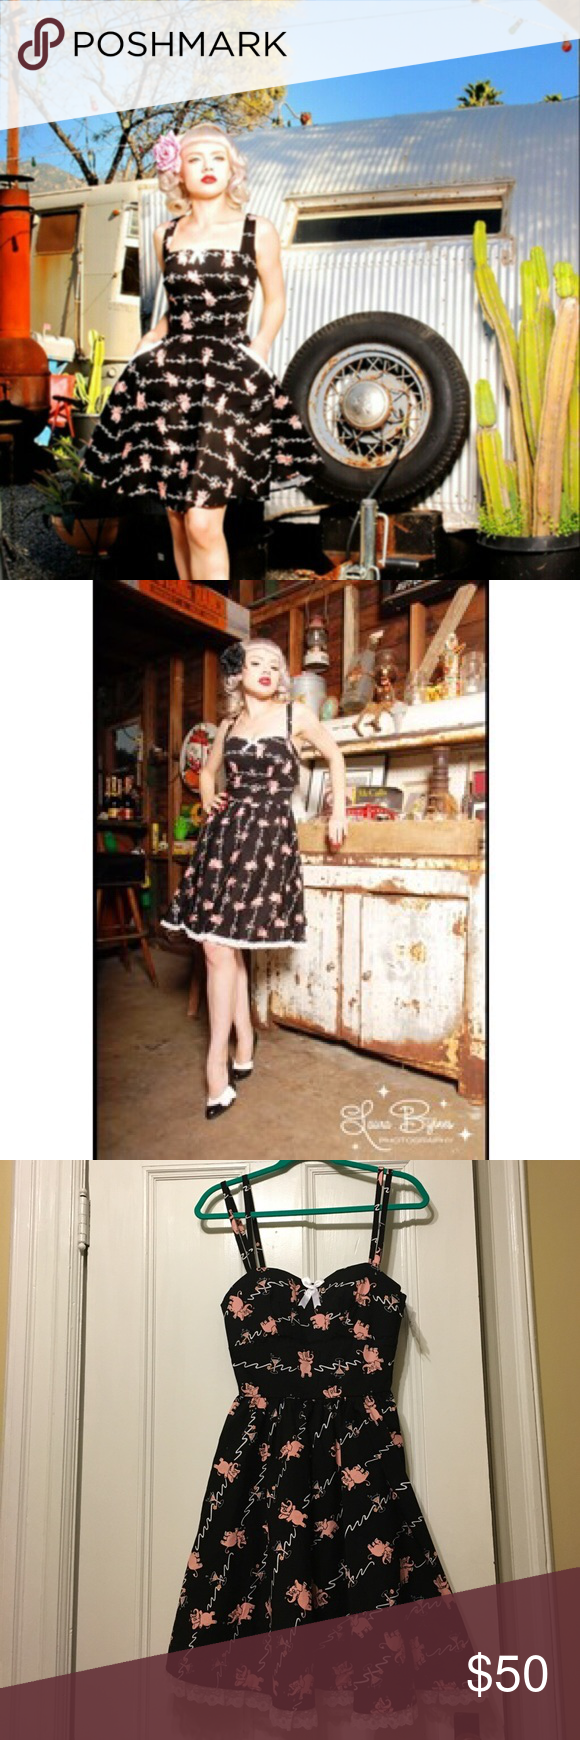 fdd396ffc03b93 Fashion Vintage. Pinup Girl Clothing